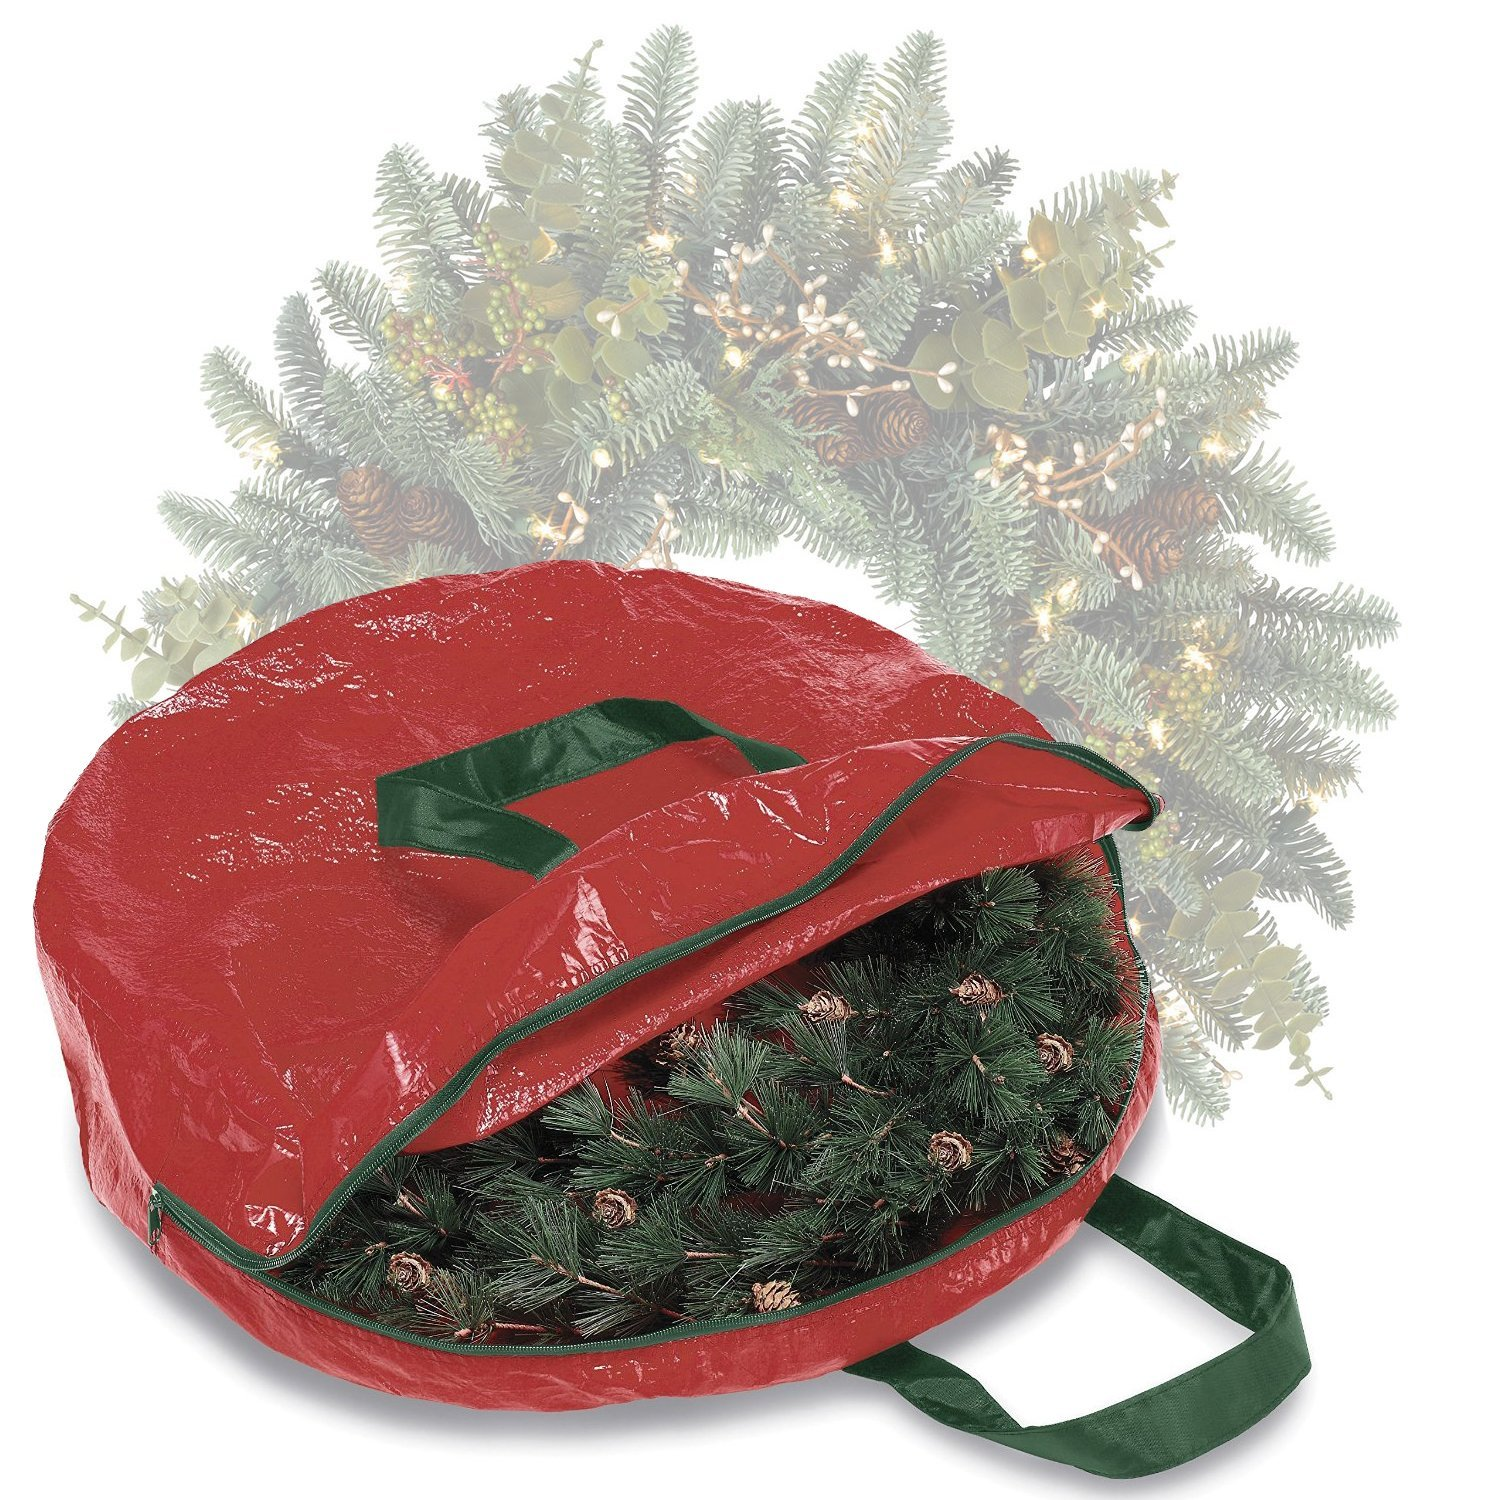 HomeCrate heavy duty Christmas Wreath and Garland Storage Bag - In Red  sc 1 st  Alibaba & Buy Wreath And Garland Storage Bag in Cheap Price on m.alibaba.com